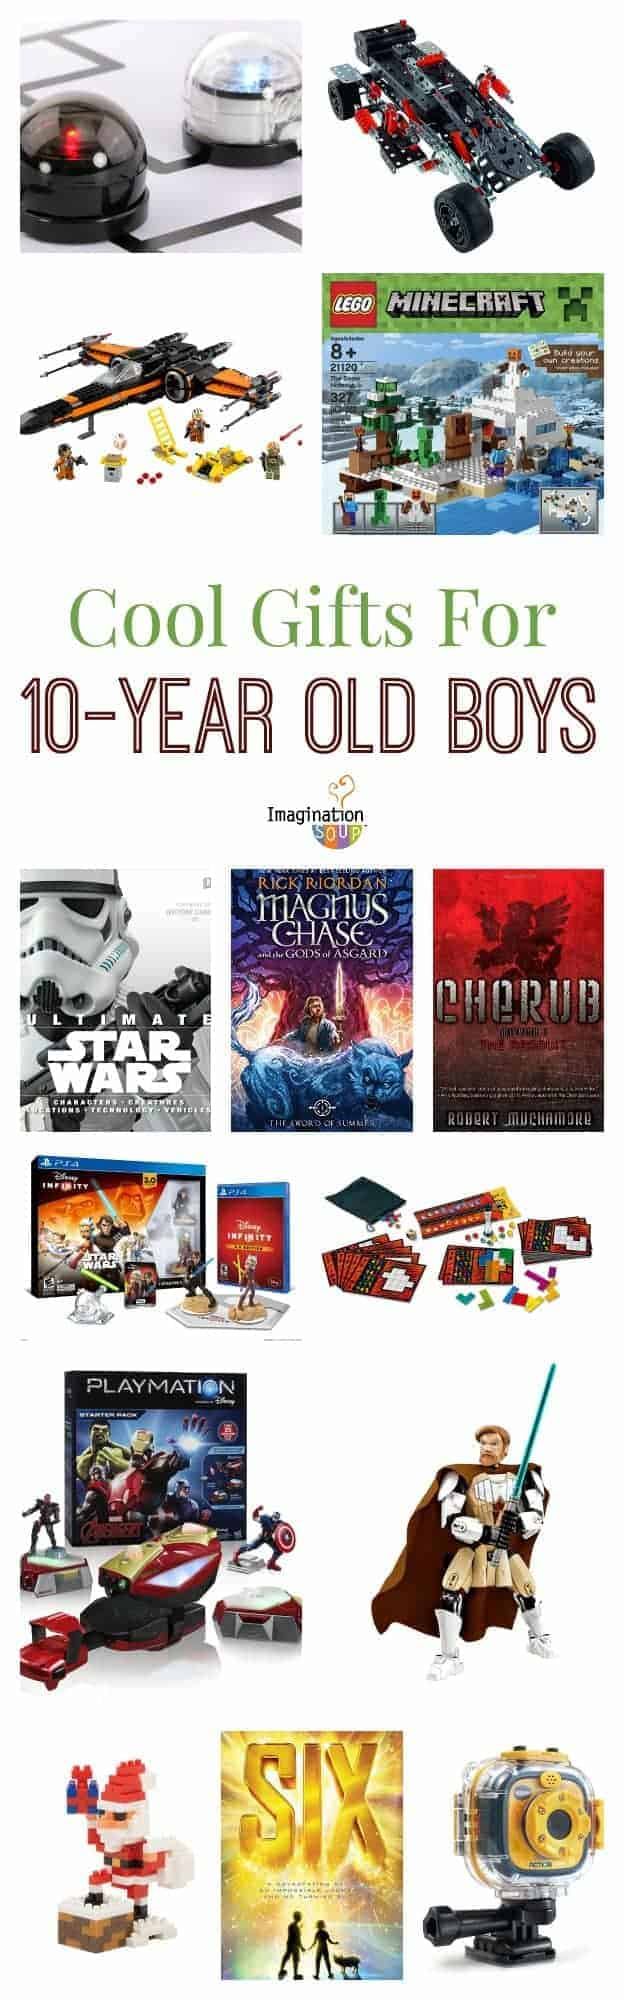 gifts for 10 year old boys | imagination soup